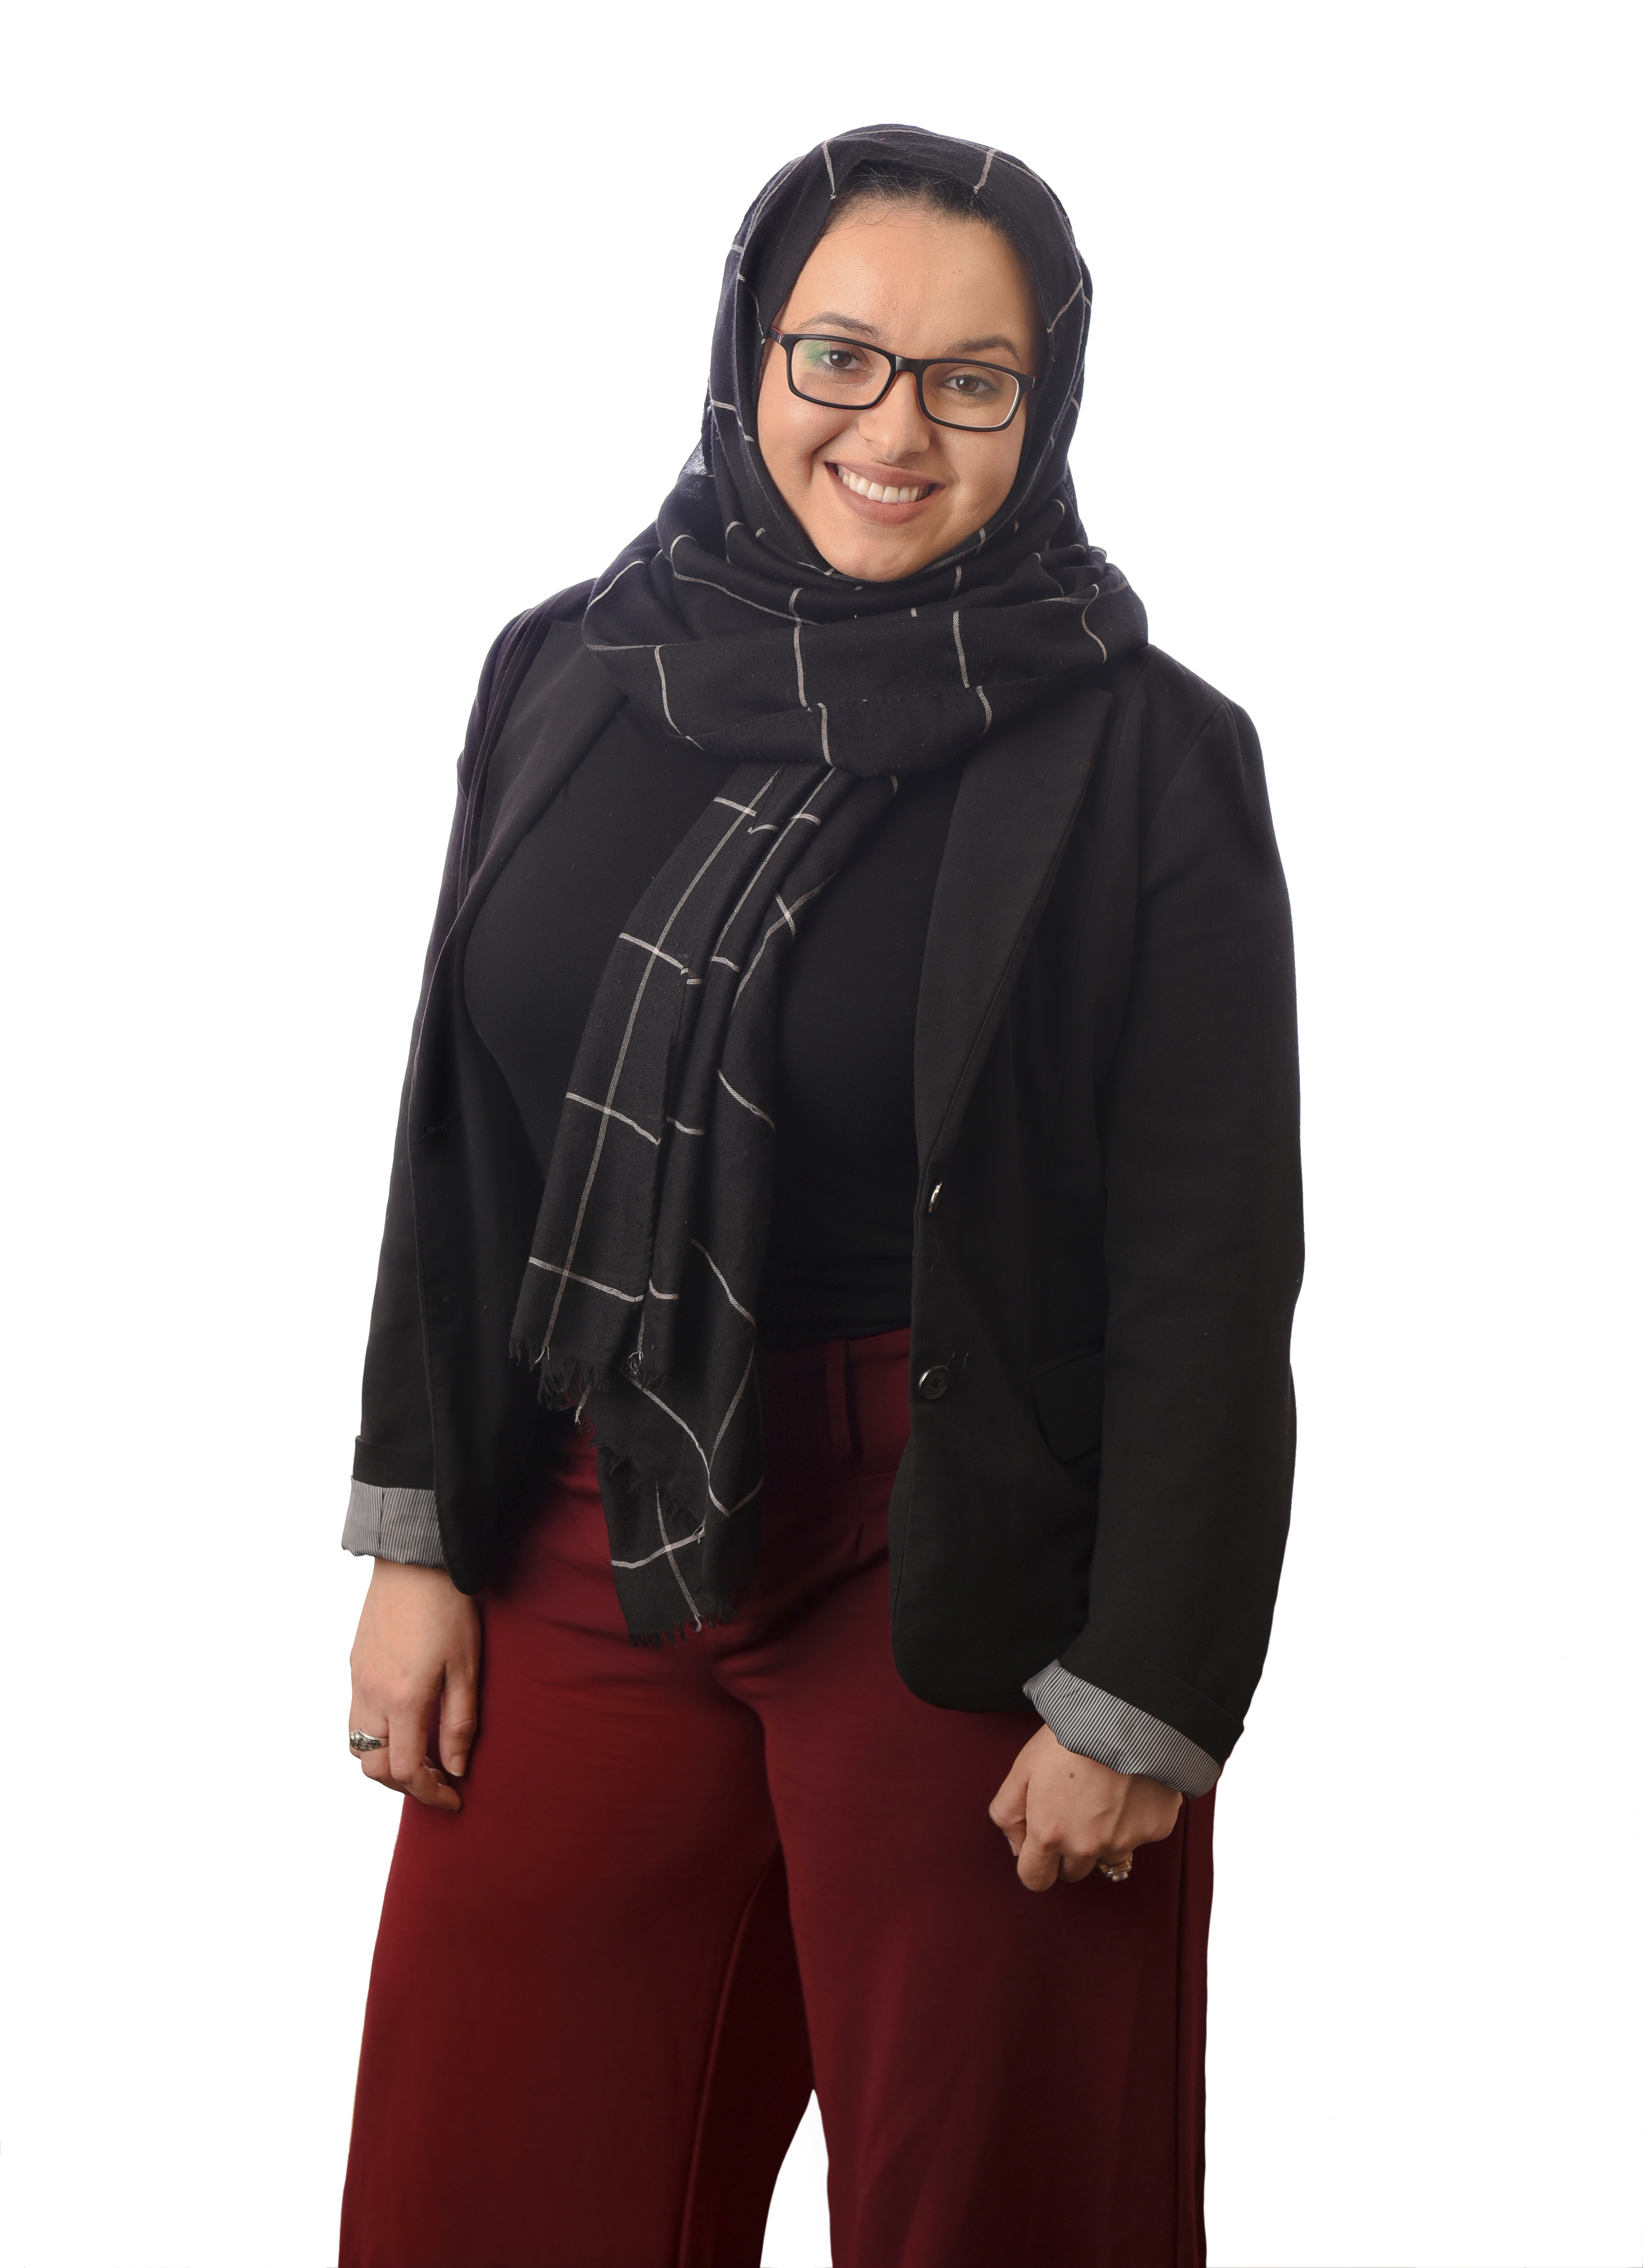 Photo by BENJAMIN KRAIN --03/26/18--Graduate student Nora Bouzihay brought the Human Library project to the UALR campus. Bouzihay is from Morocco and studied in Dubai.